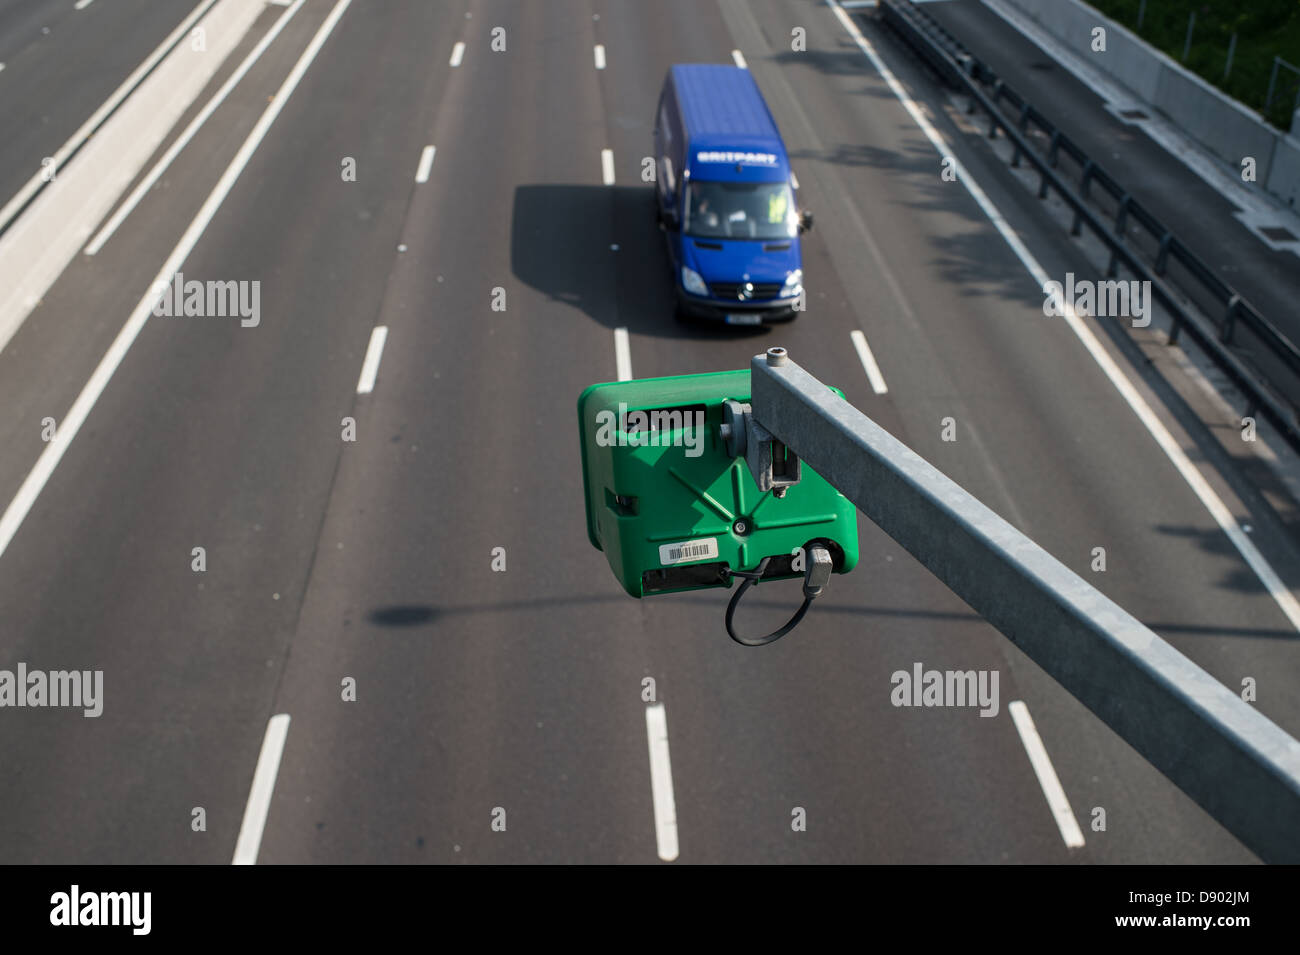 Round the clock monitoring of traffic on the M25 London Orbital Motorway in Essex. - Stock Image